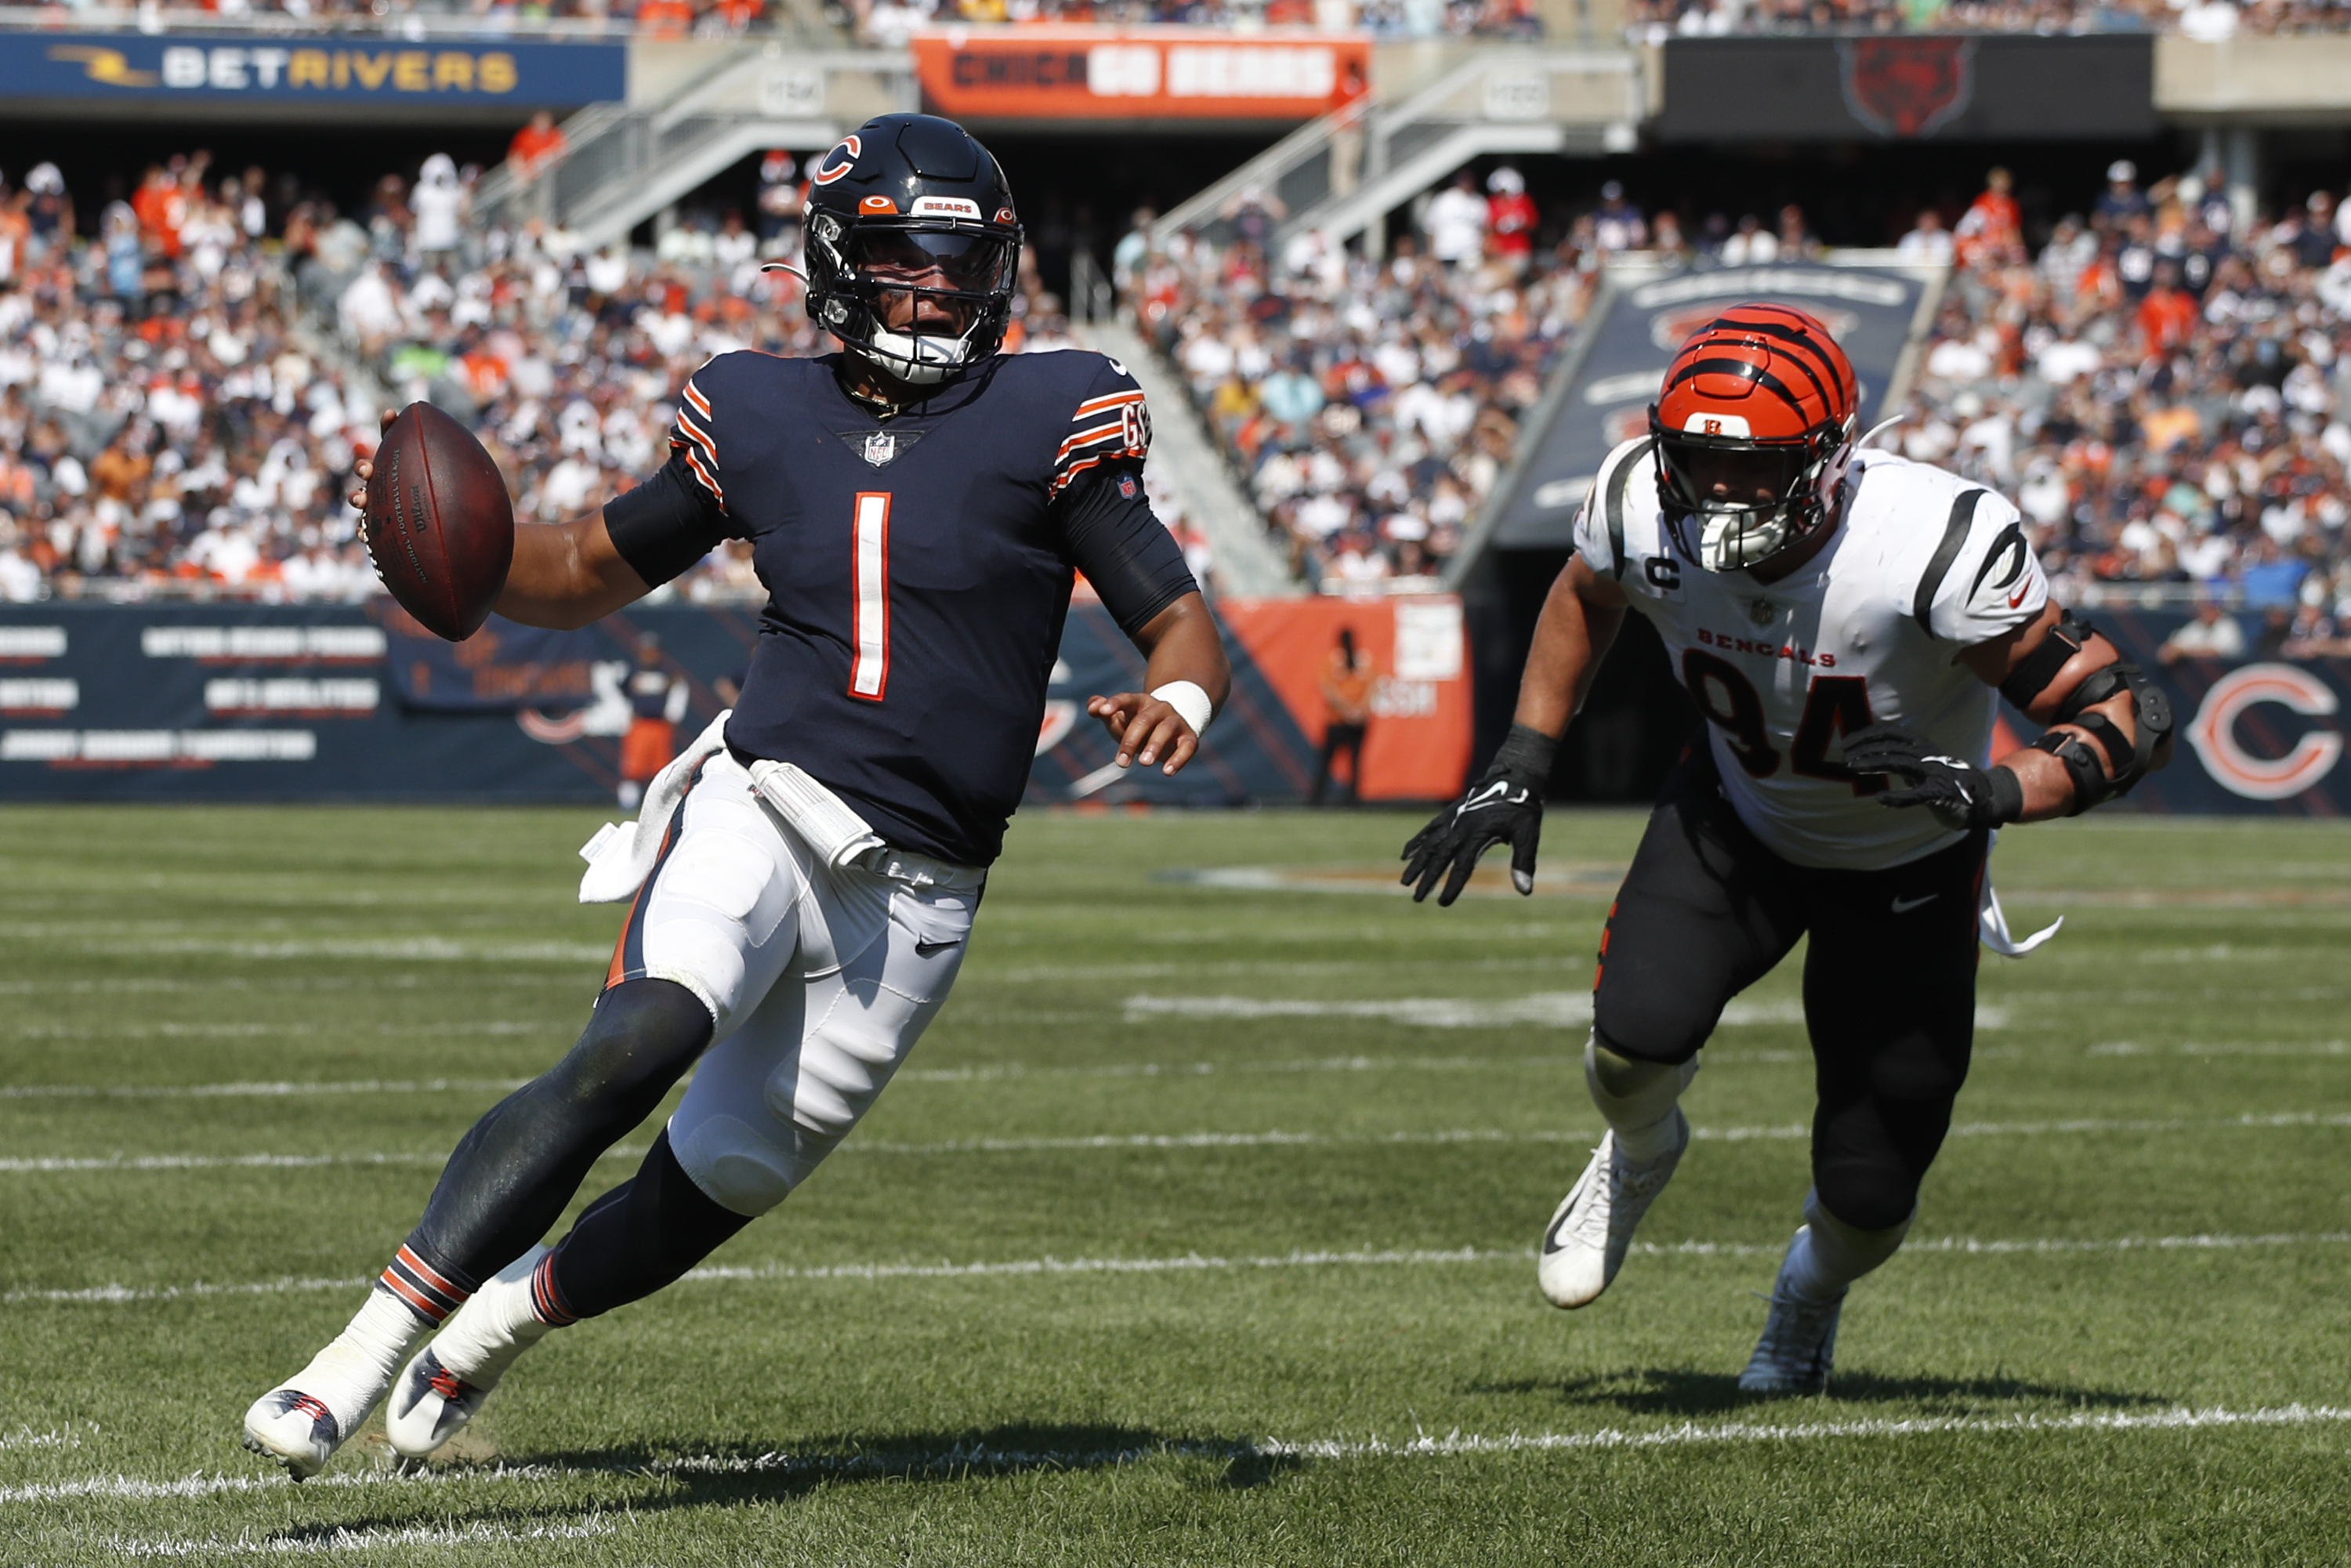 Bears rookie quarterback Justin Fields (1) gained 35 yards on seven carries against the Bengals on. Sunday, not including three kneel-downs in the final 1:54.